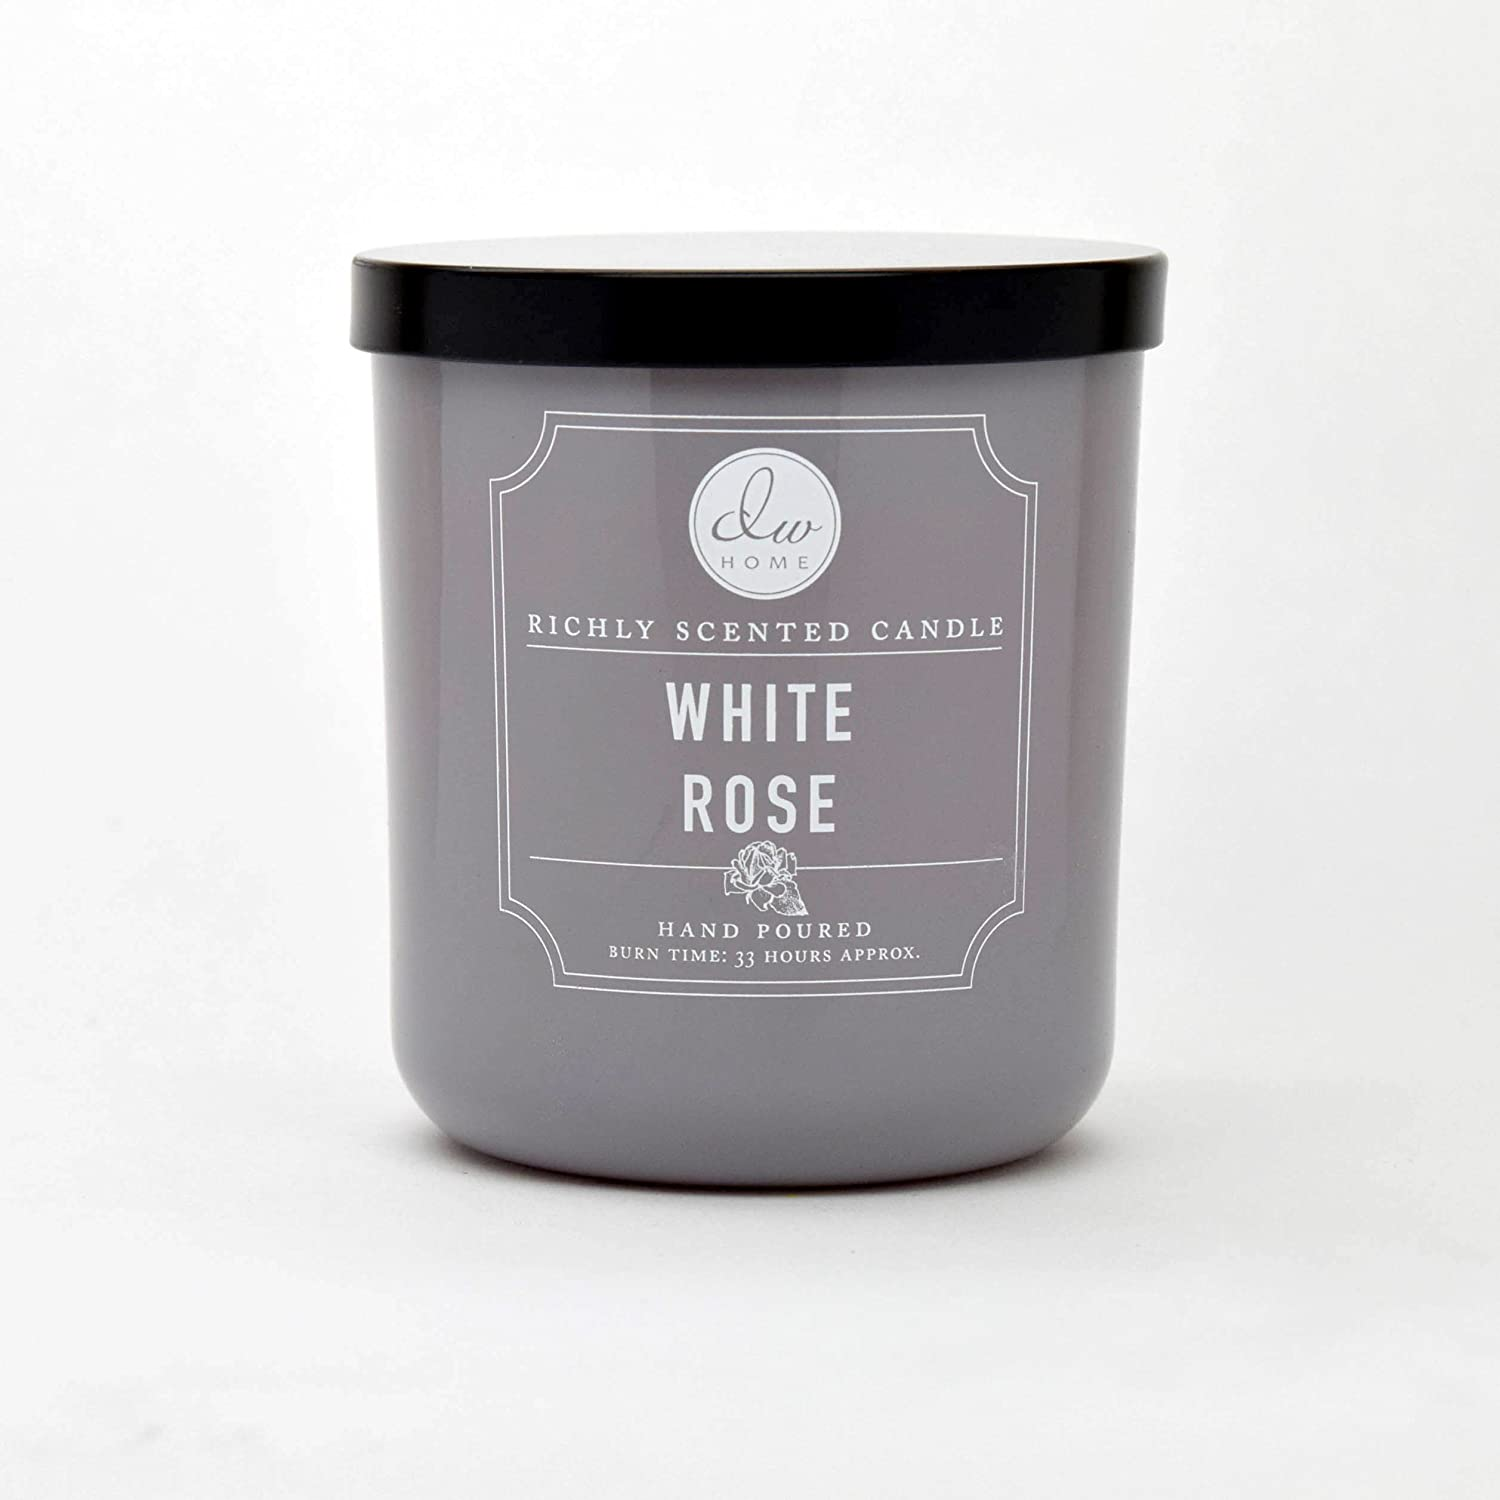 DW Home Medium Single Wick Candle, White Rose